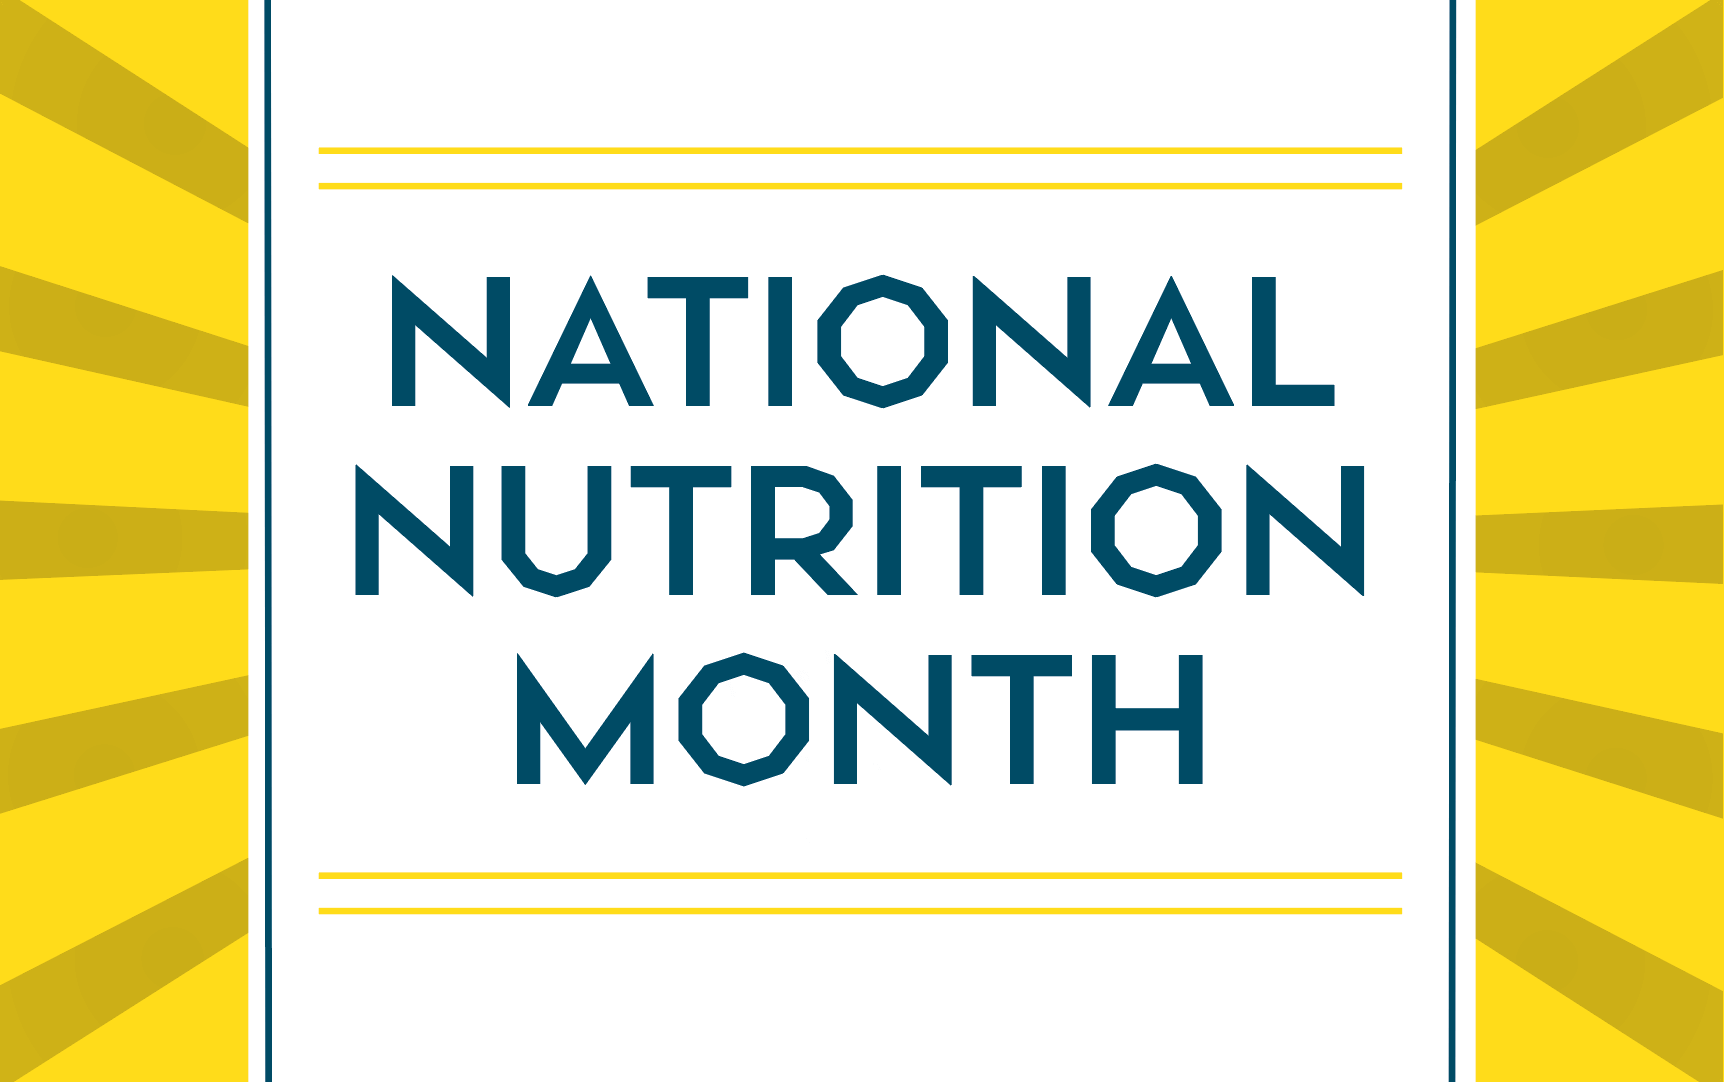 National Nutrition Month March Promo